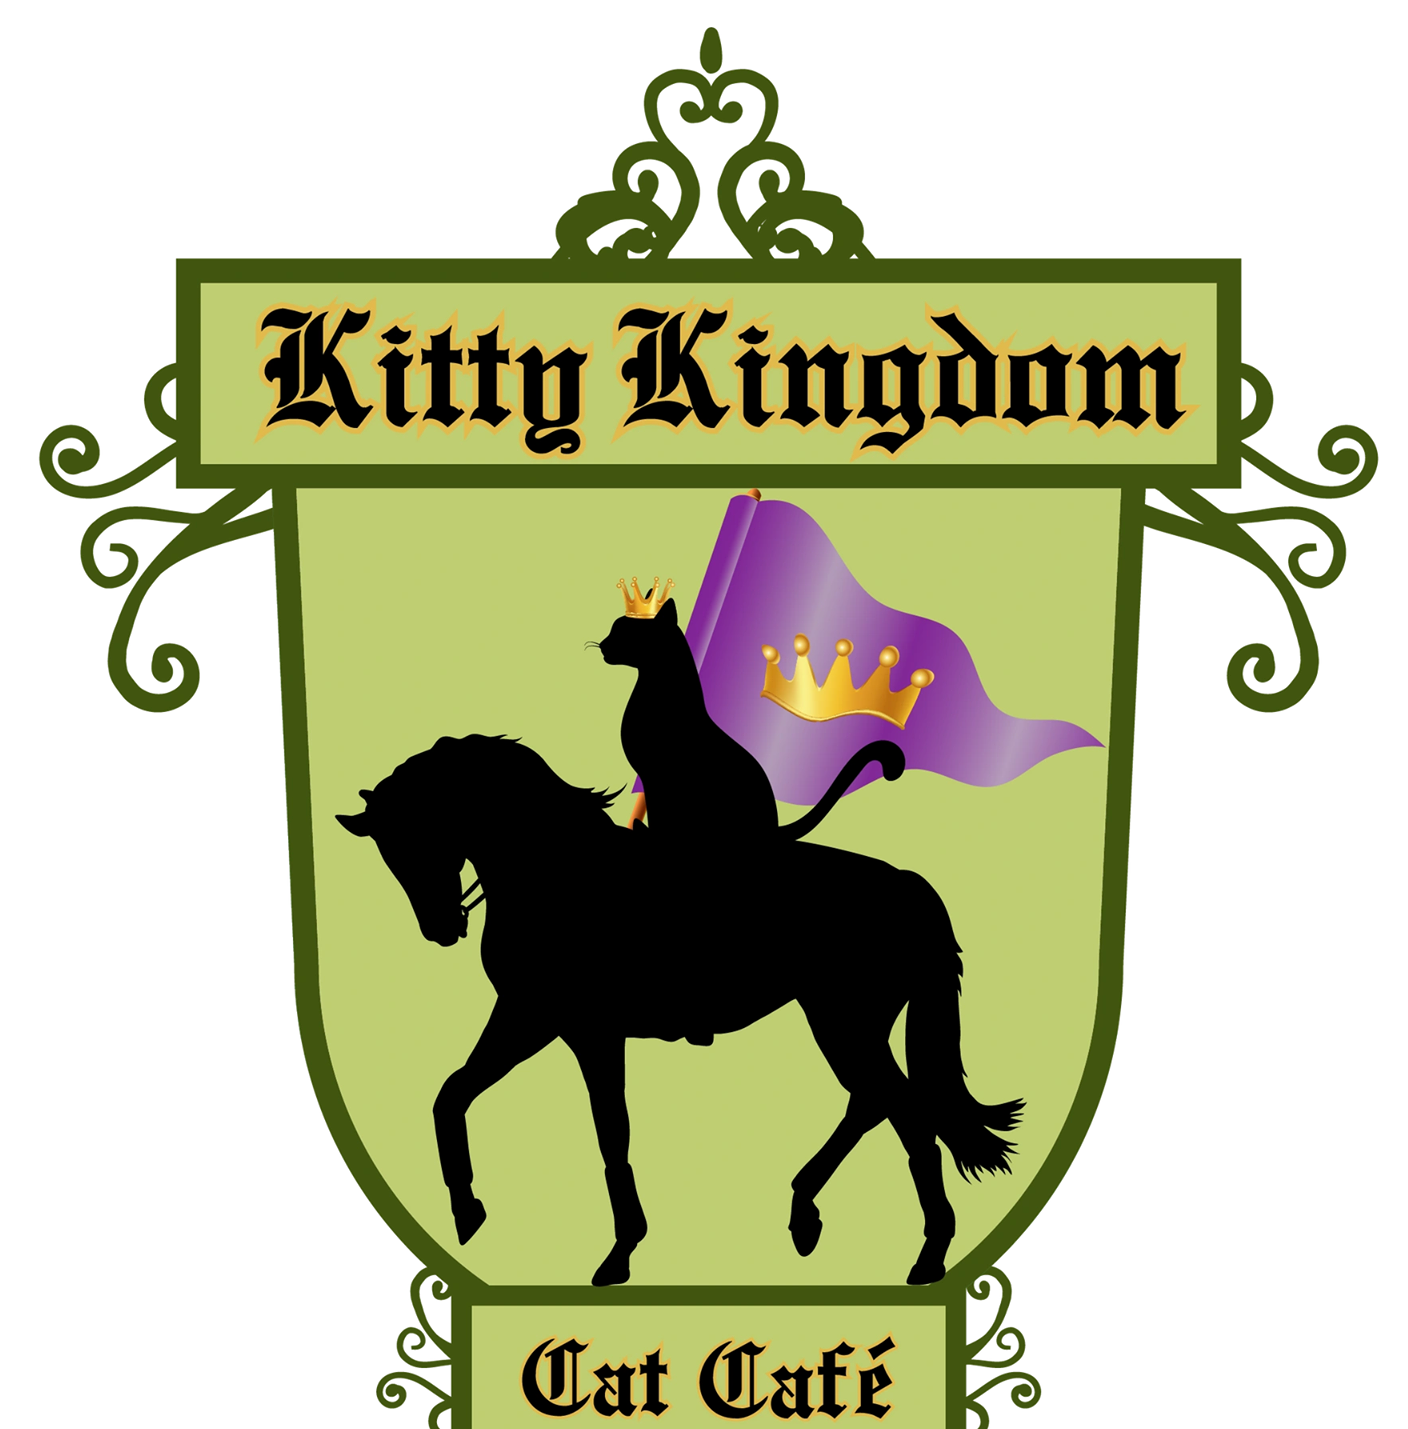 Introducing Kitty Kingdom Cat Cafe